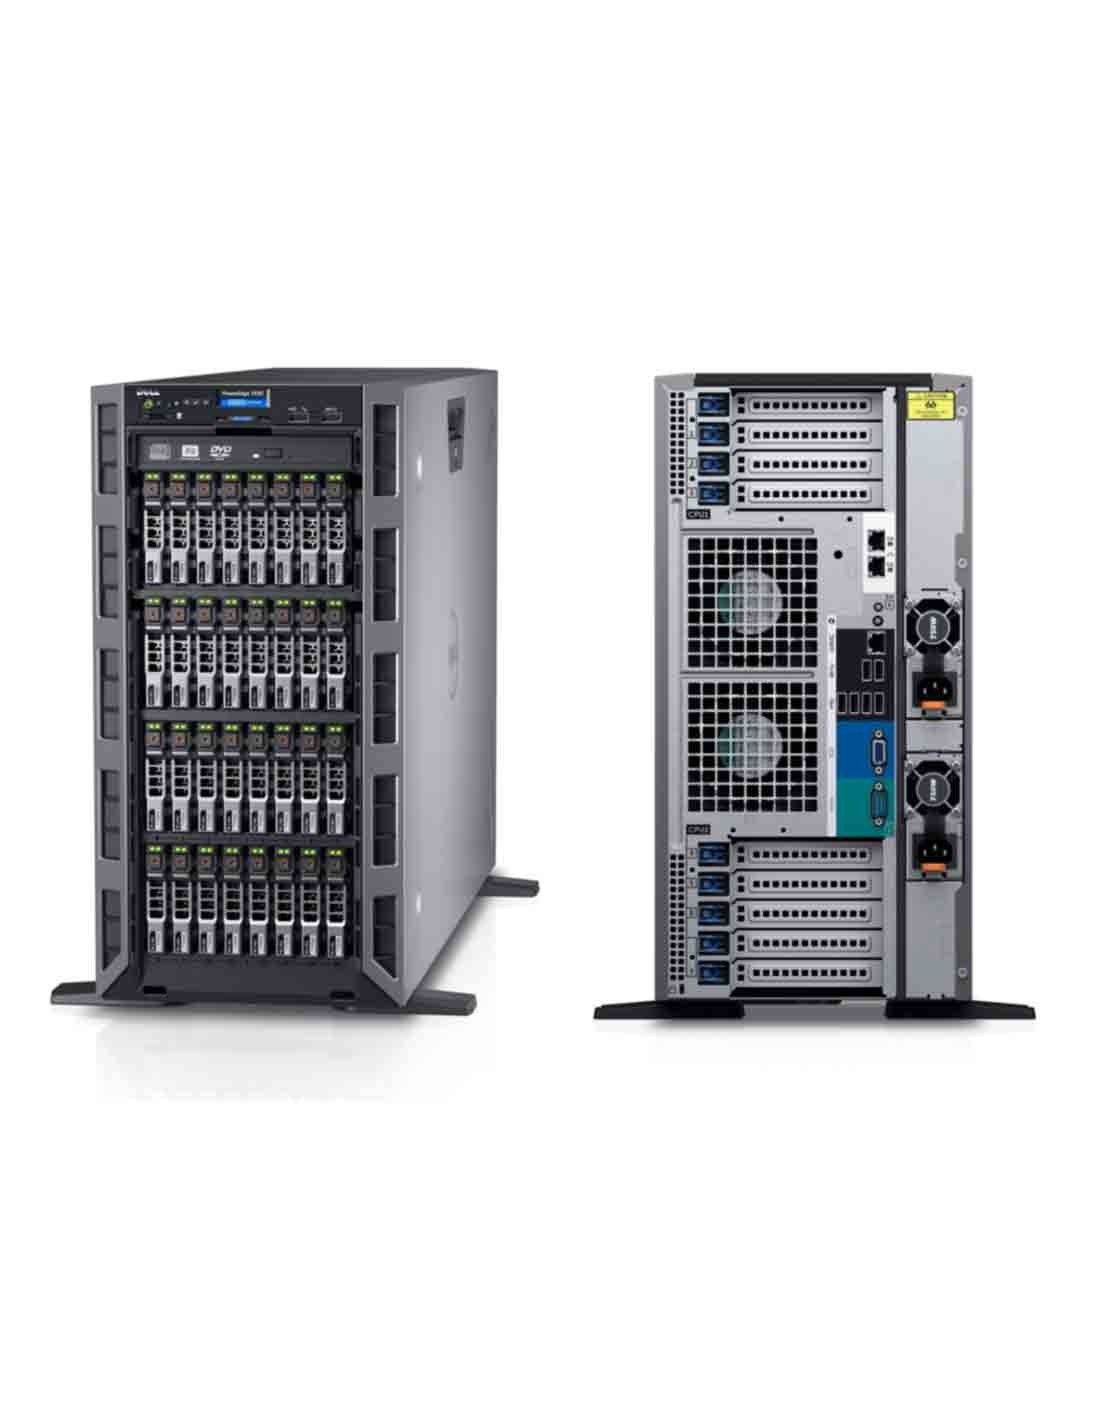 Dell PowerEdge T630 Tower Server delivers peak performance